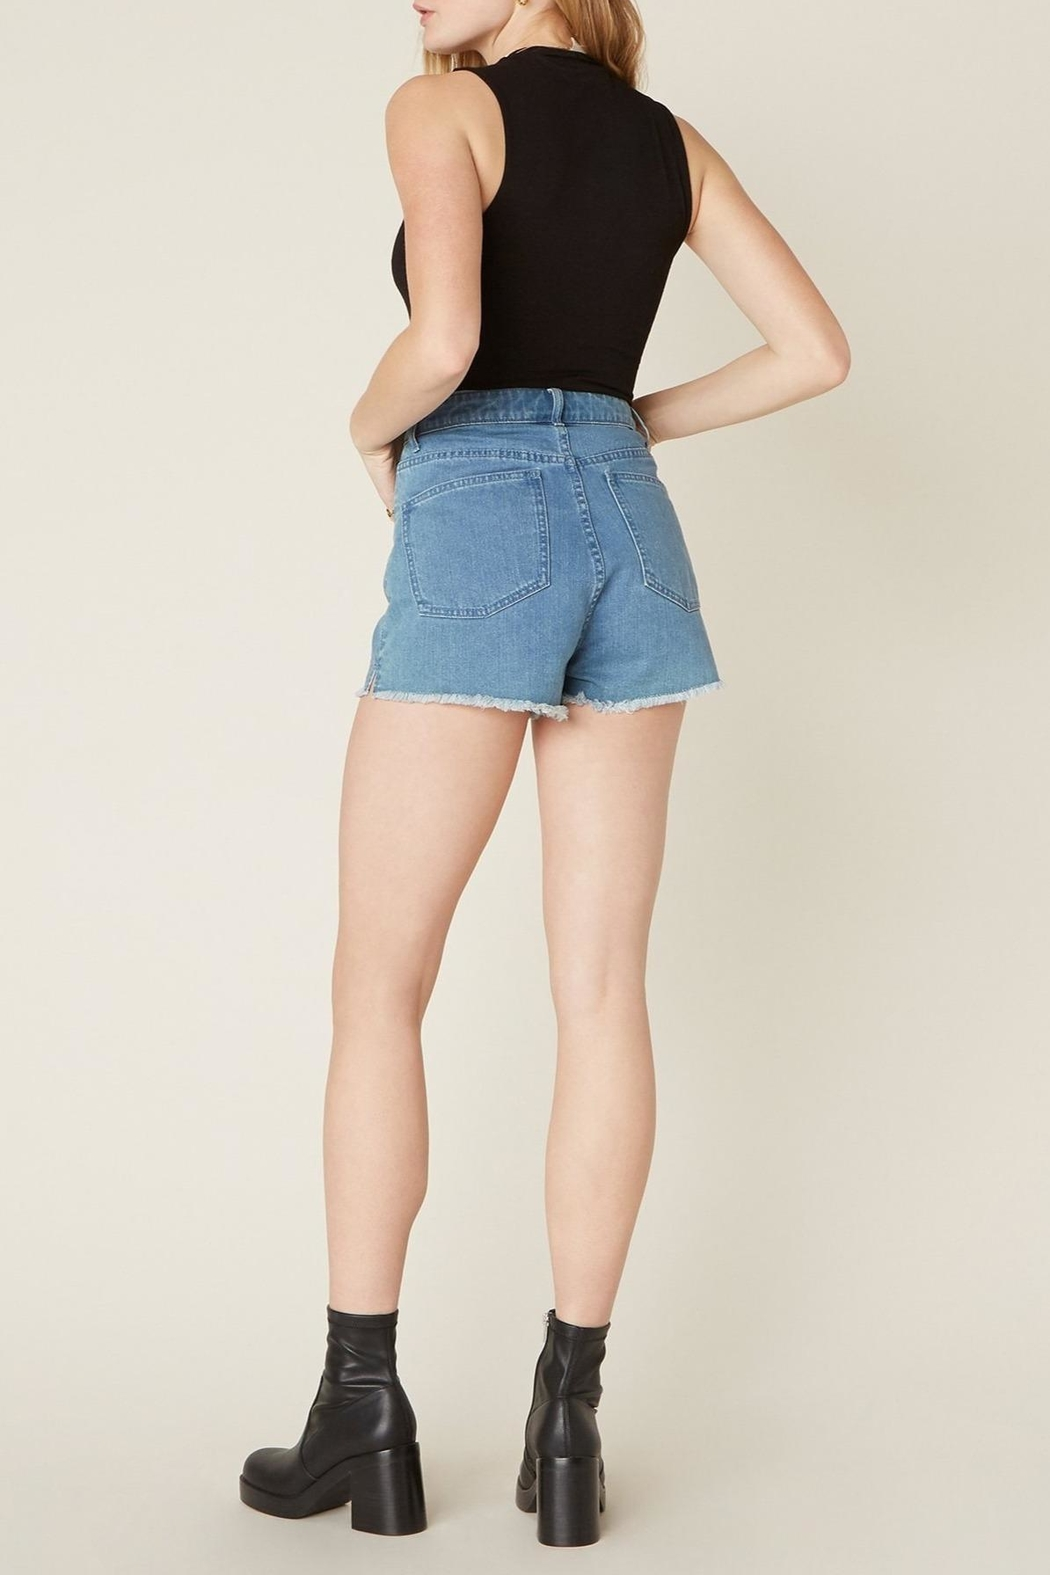 Jack by BB Dakota Down-To-Business Denim Short - Back Cropped Image